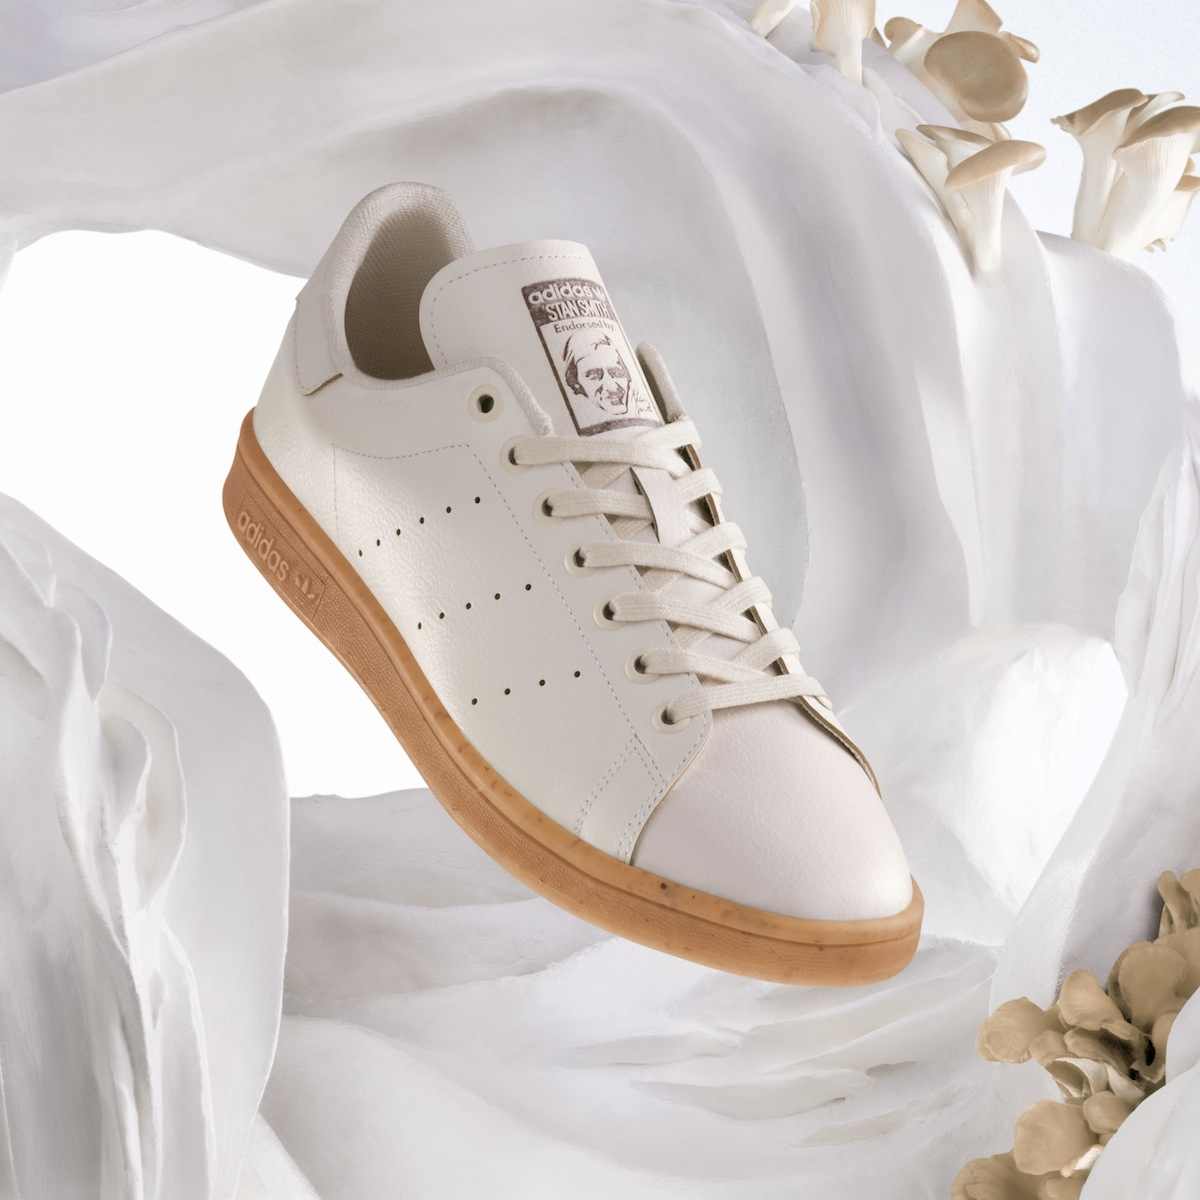 How Adidas wants to make the Stan Smith even greener